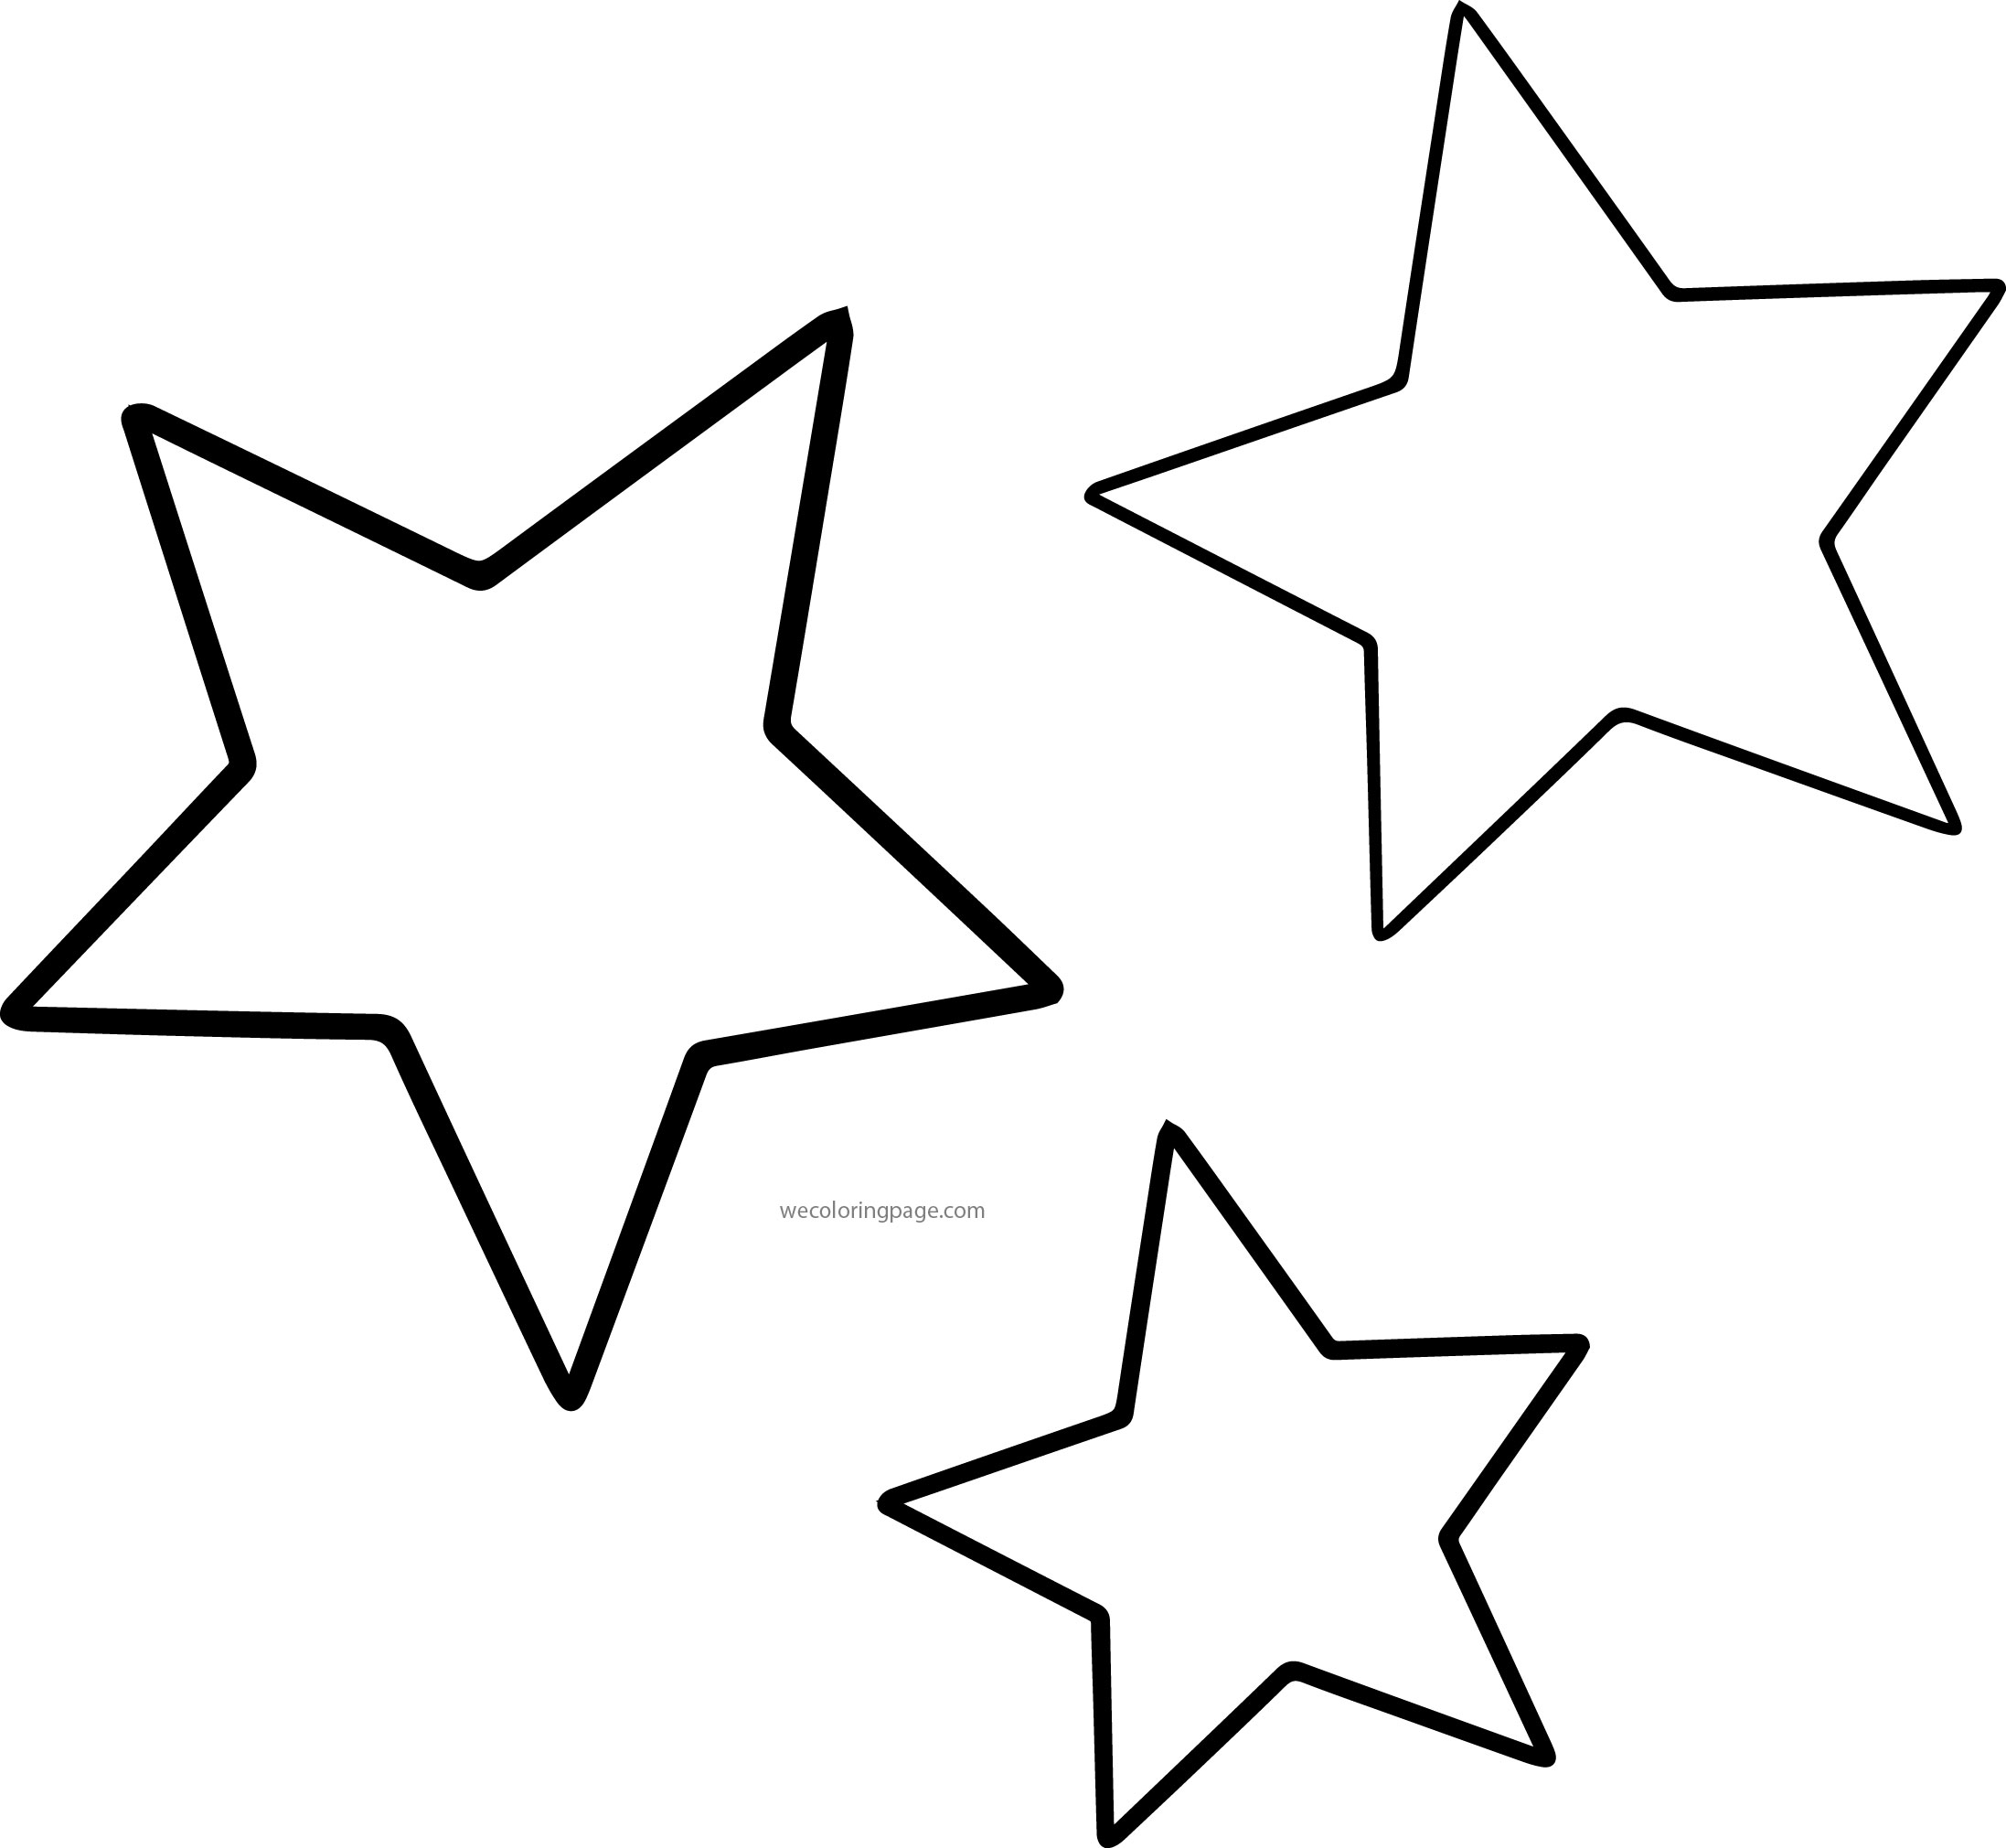 stars coloring pages free printable star coloring pages for kids stars pages coloring